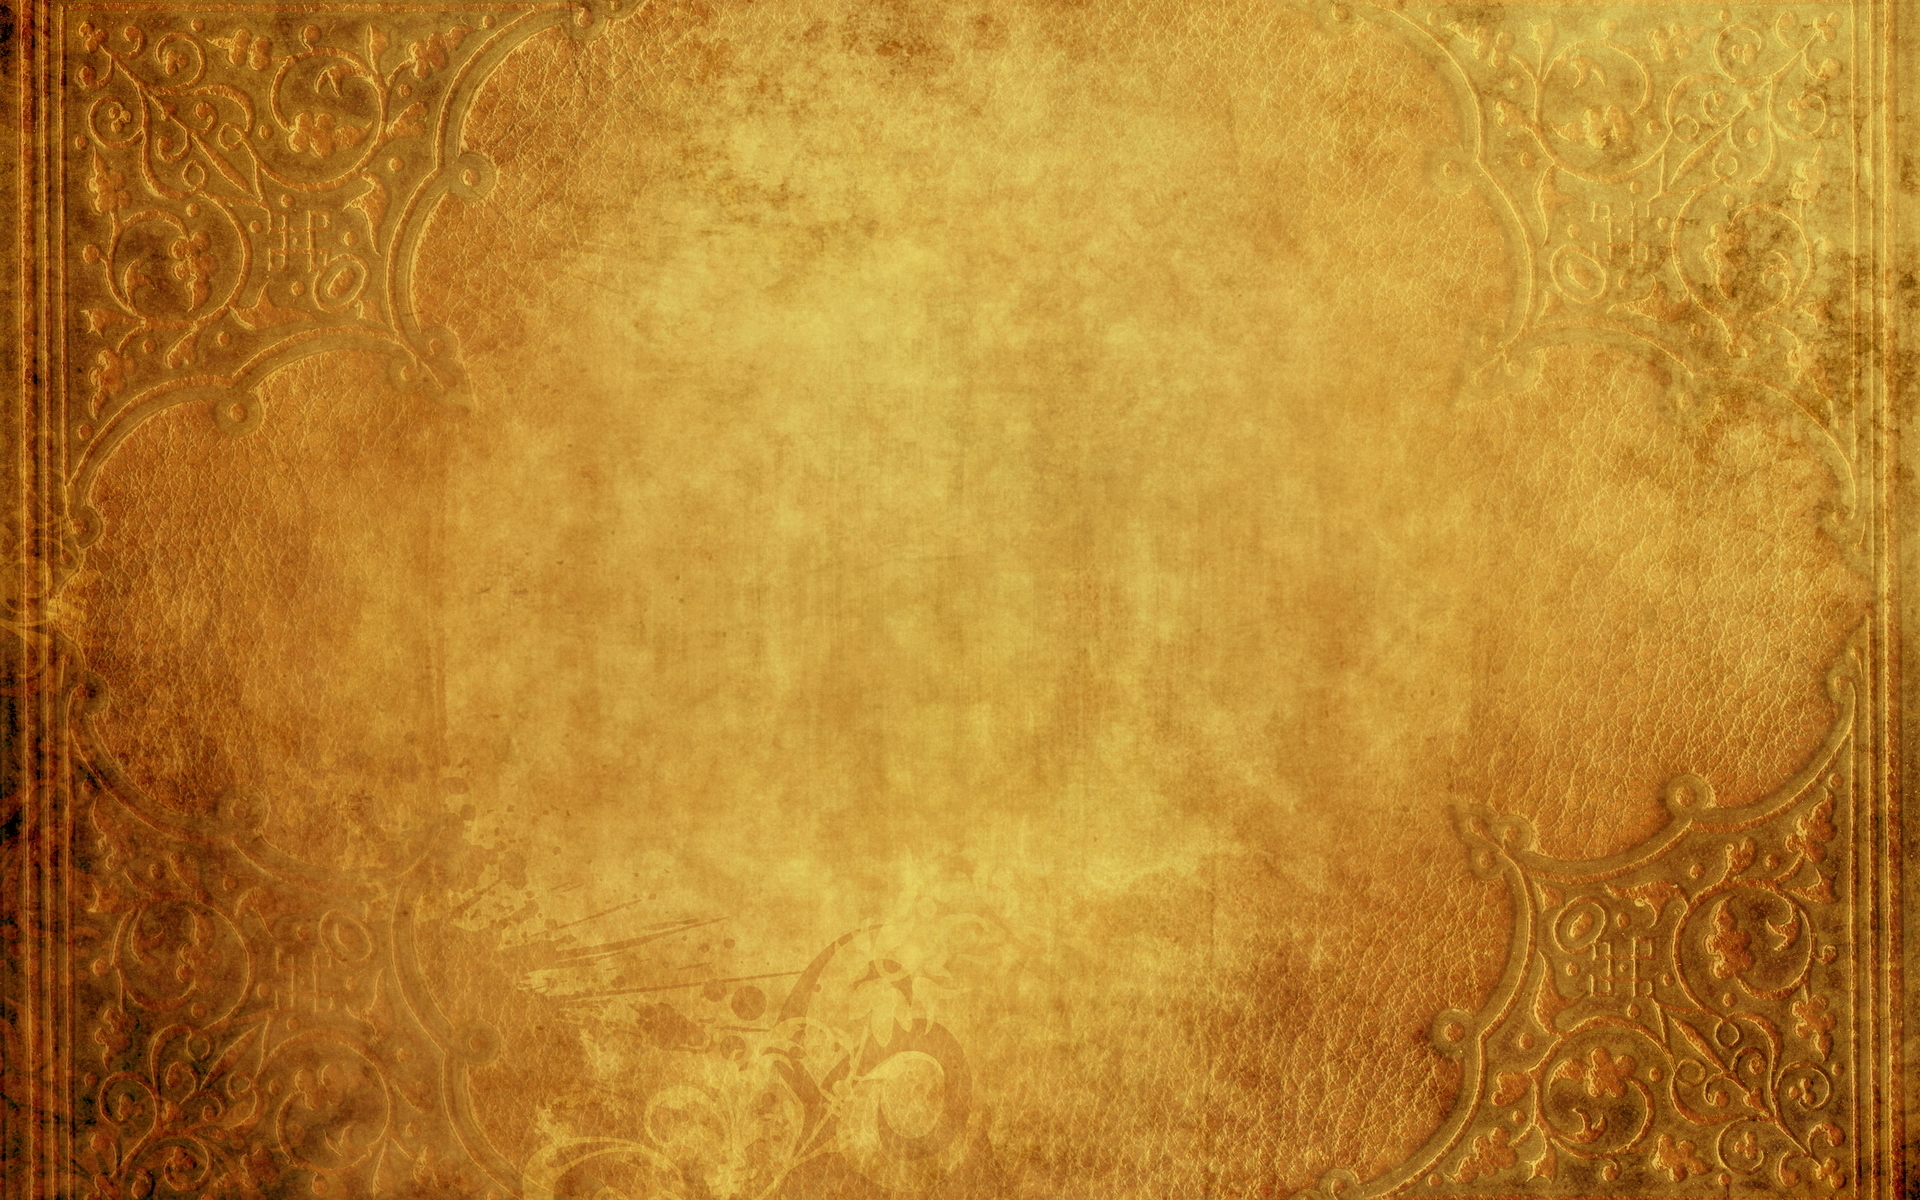 texture image: gold texture, texture gold, gold, golden background ...: bgfons.com/download/453